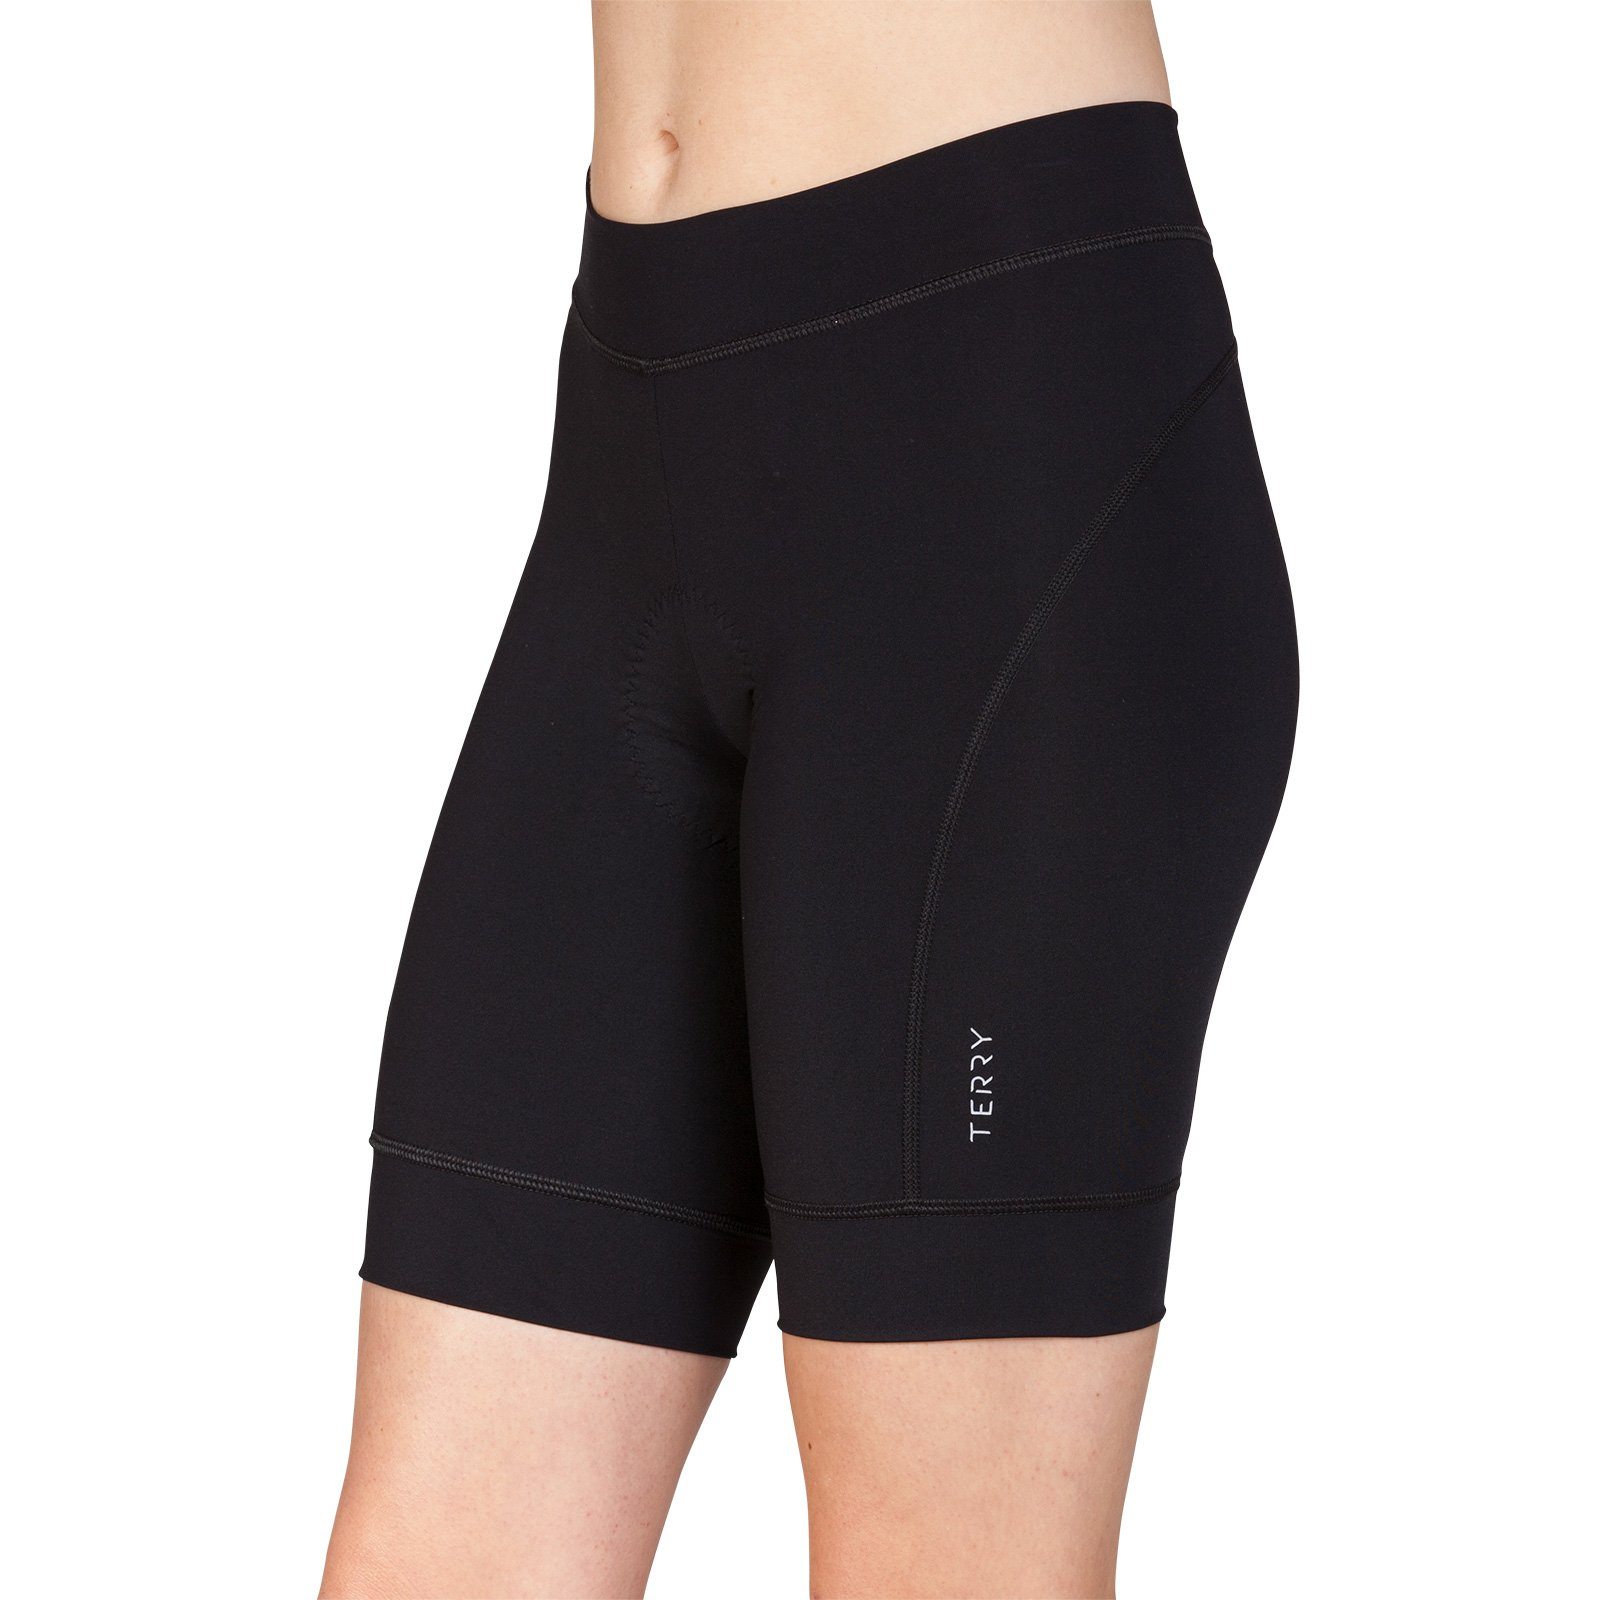 Terry Highly Rated Breakaway Performance Cycling Shorts for Women - Bicycling Magazine Editor's Choice– Black – Small